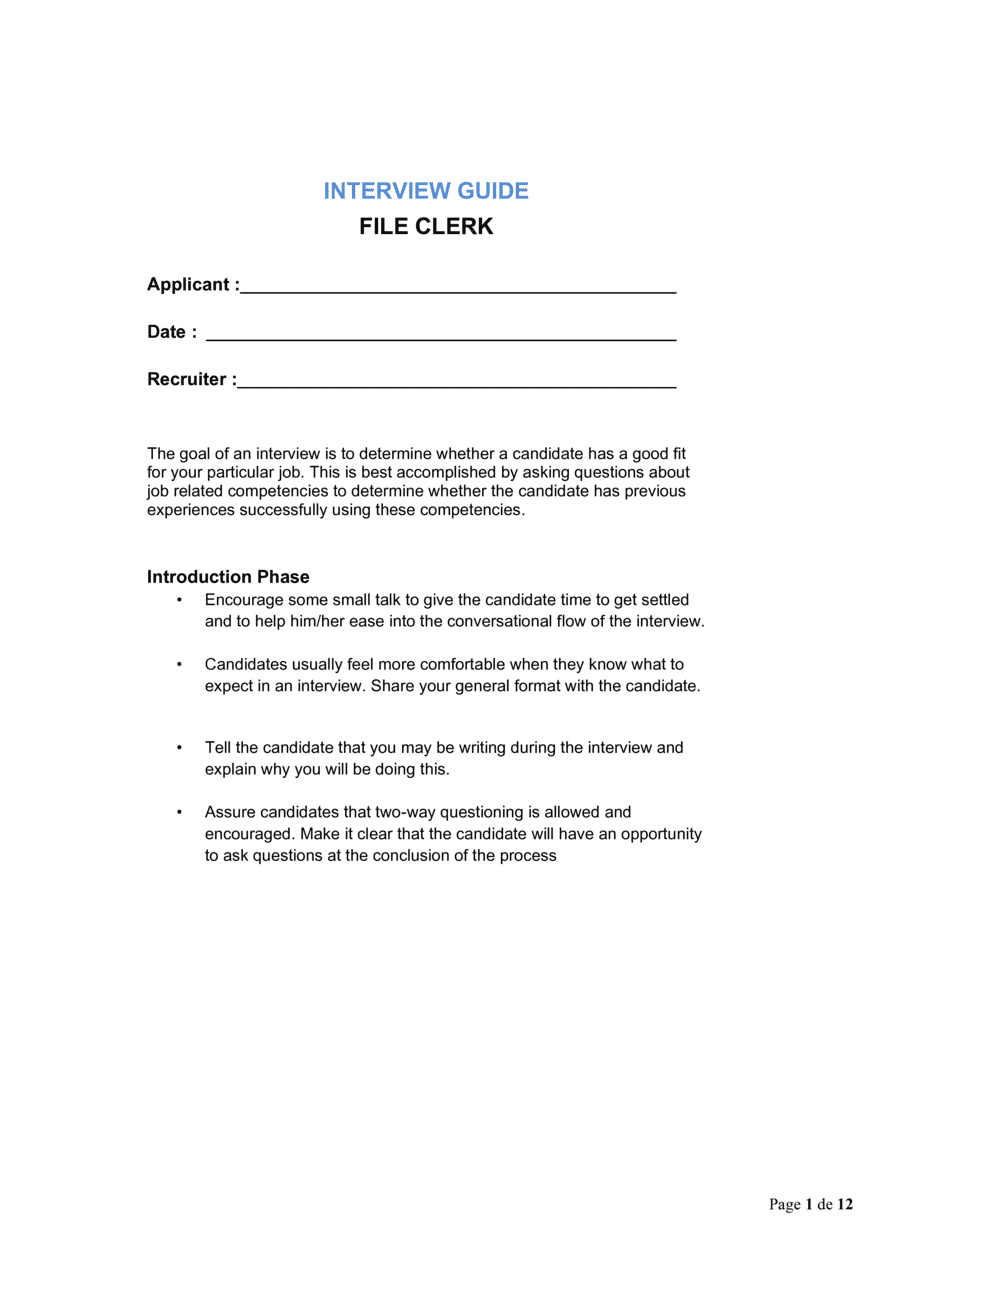 Business-in-a-Box's Interview Guide File Clerk Template